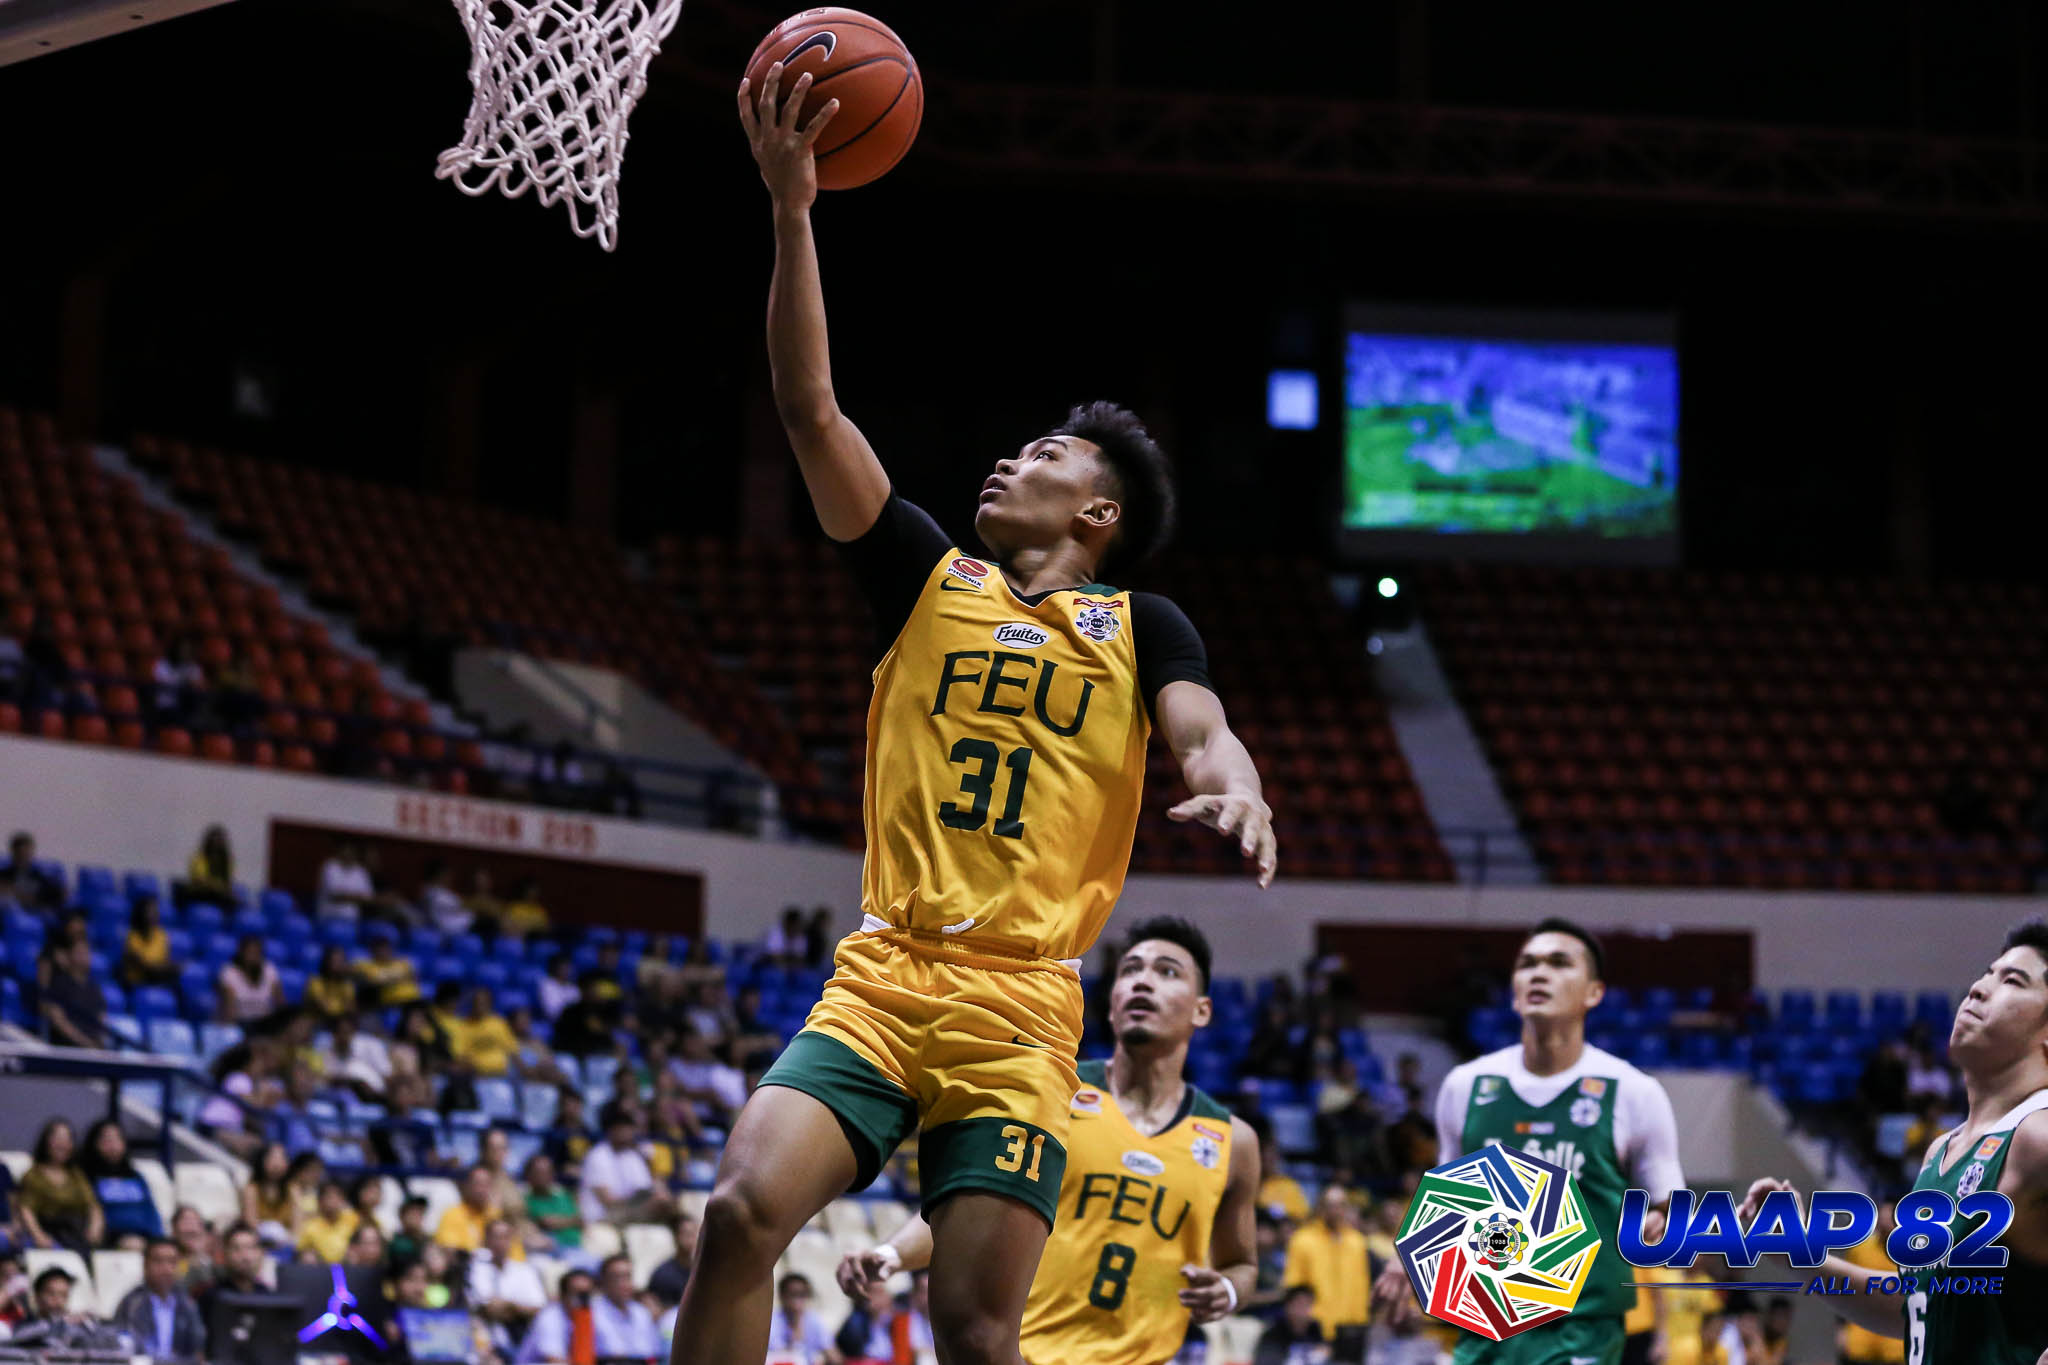 FEU crushes La Salle, moves to solo 4th